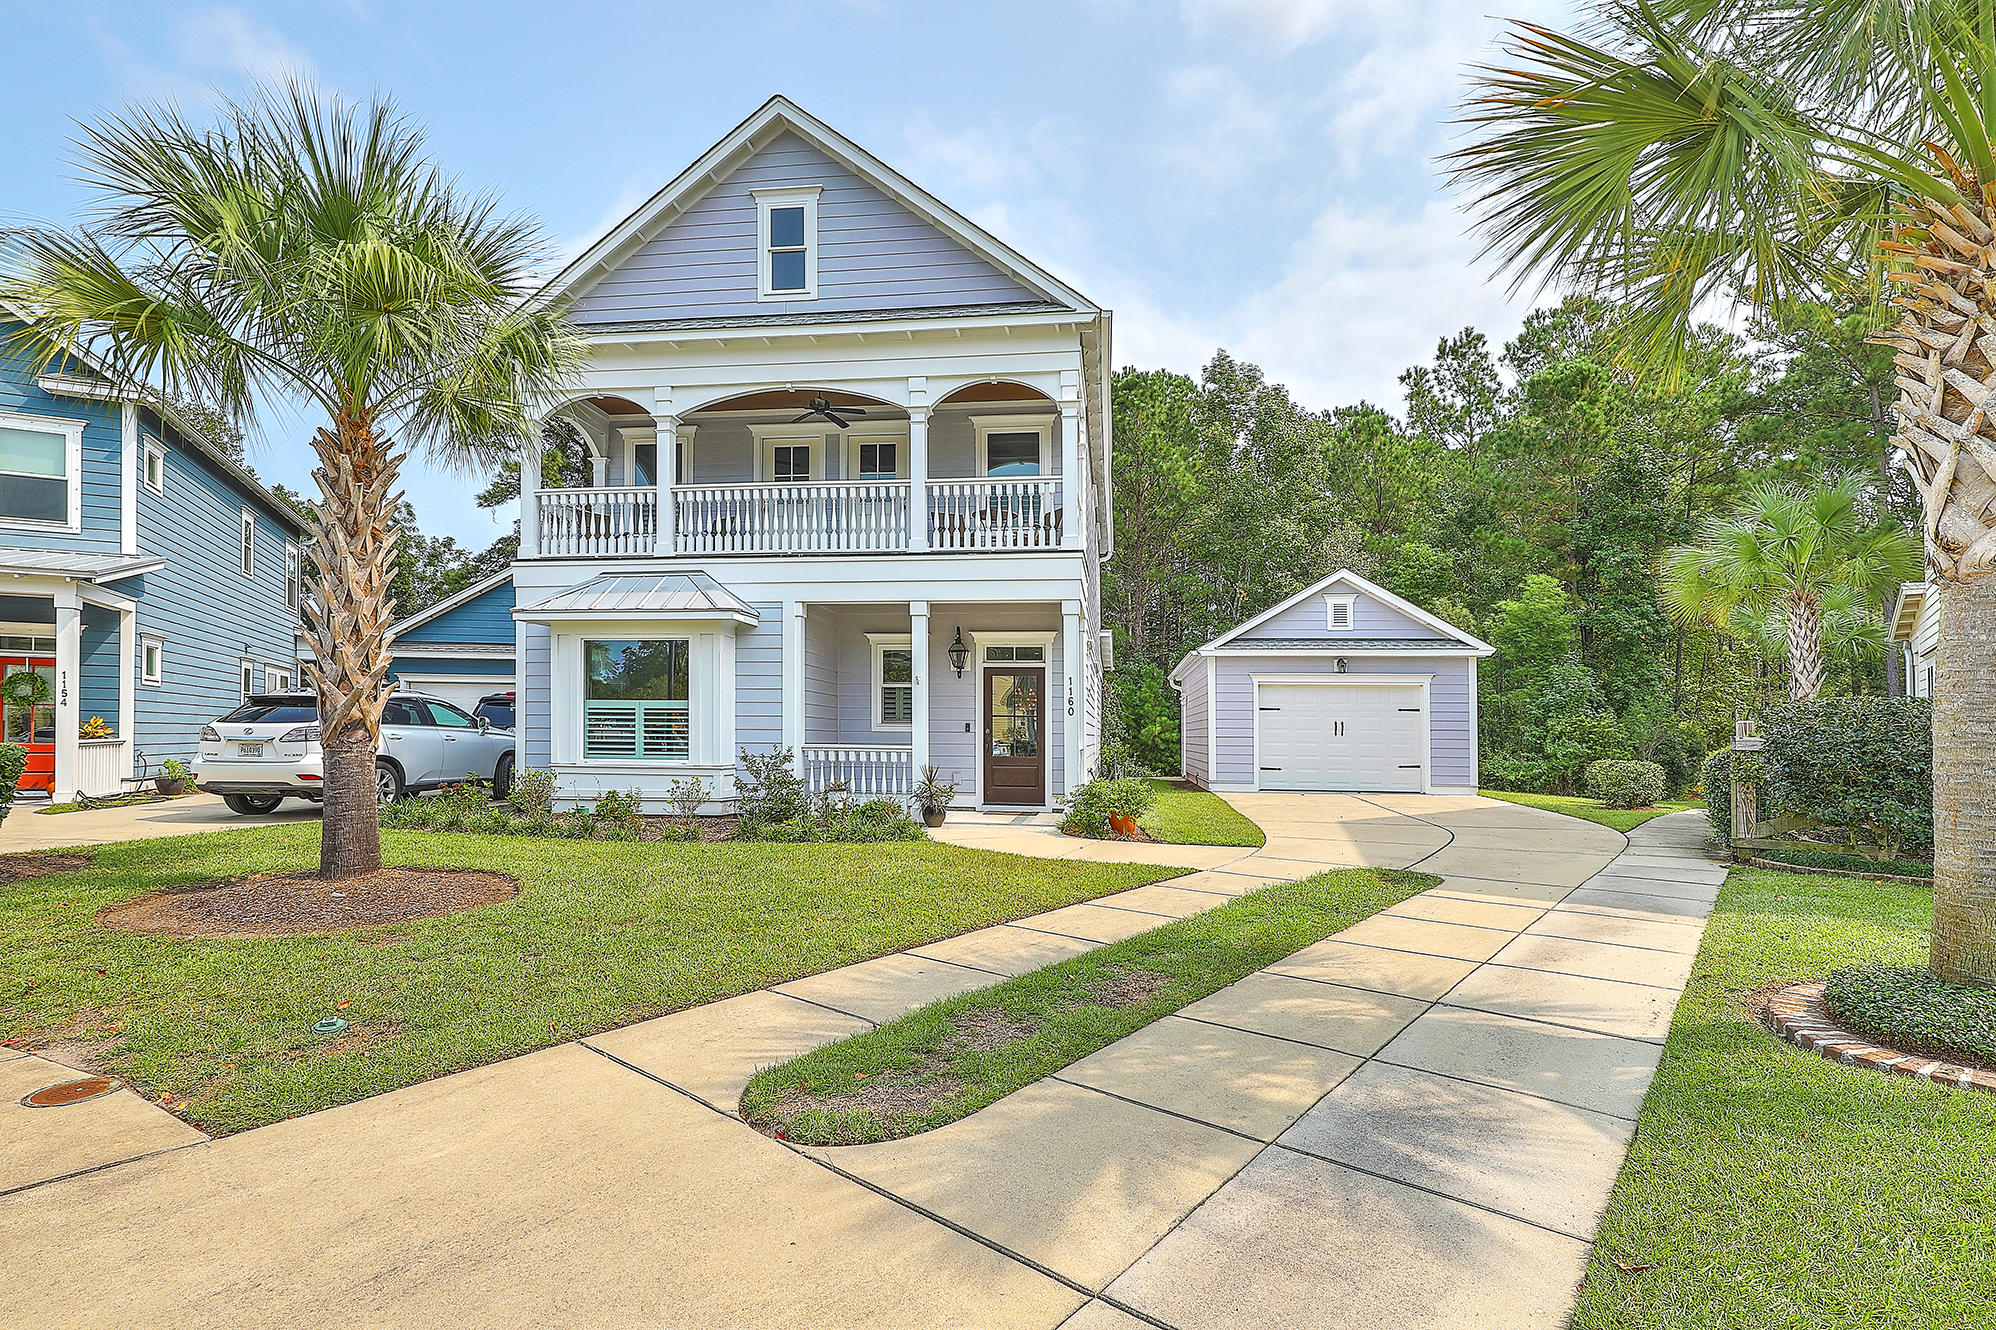 Wexford Park Homes For Sale - 1160 Wexford, Mount Pleasant, SC - 2